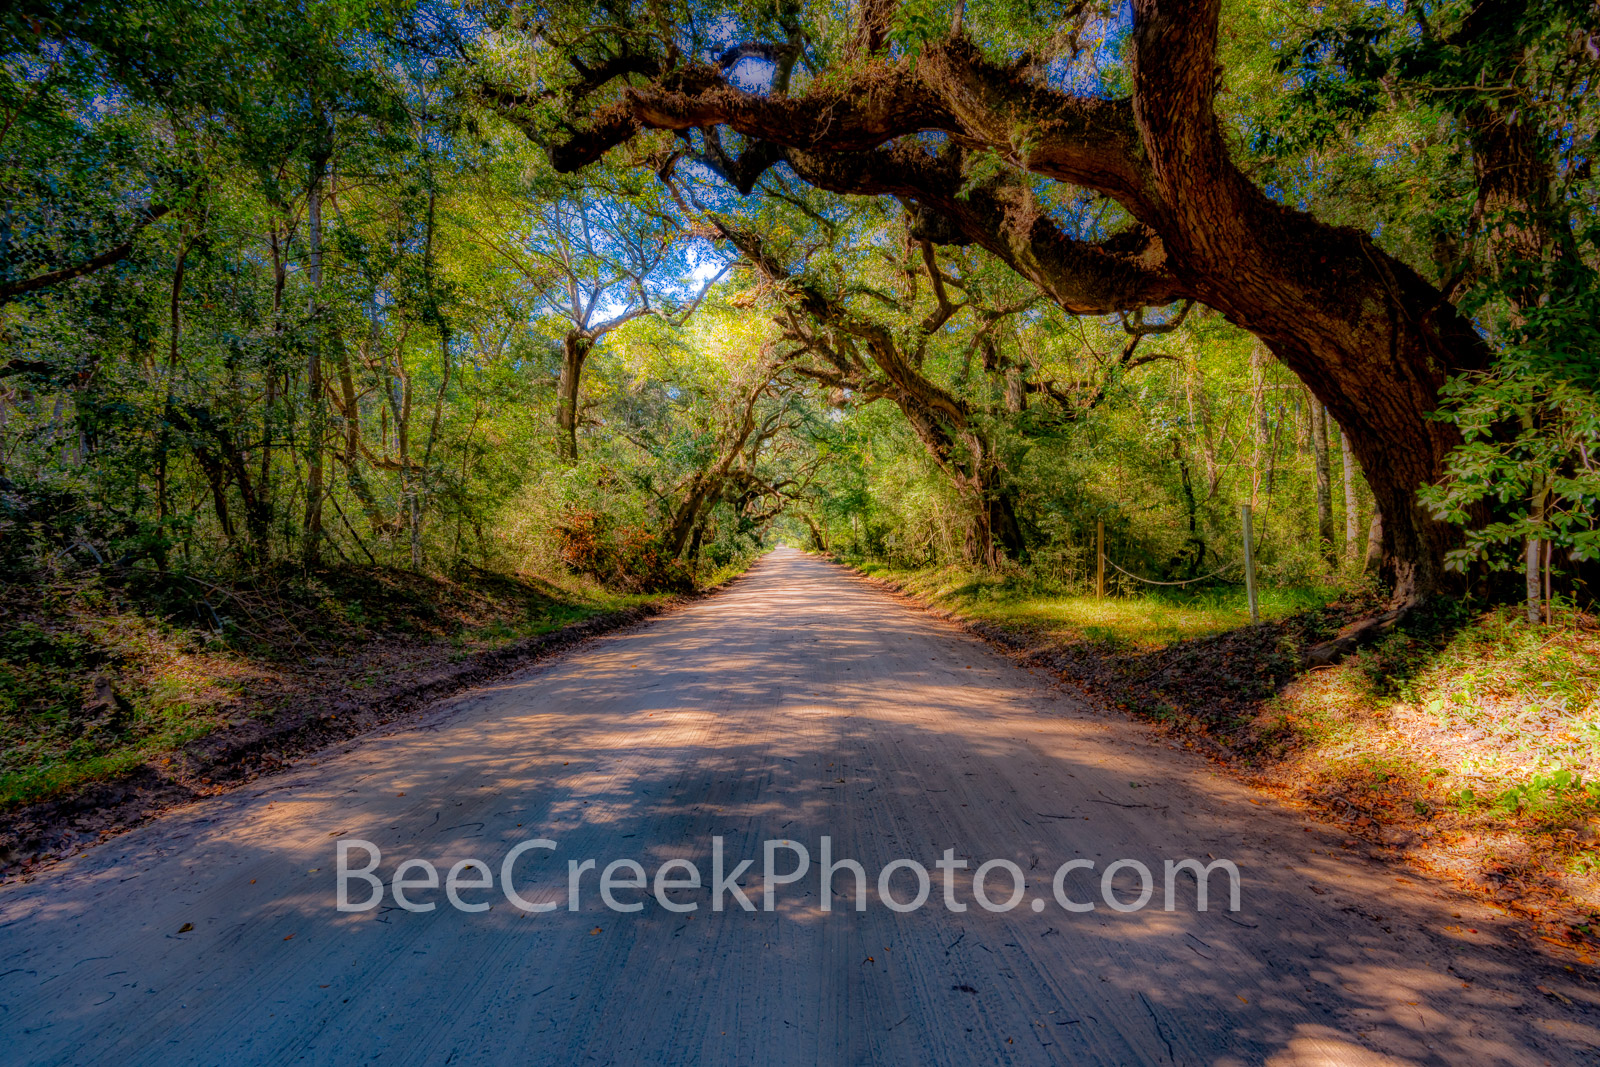 edisto island, charleston, sc, south carolina, dirt road, road, sun rays, light, shadows, trees, tree, southern us, deep south, moody, live oak, sun filtering, green, branch, magical, forest,